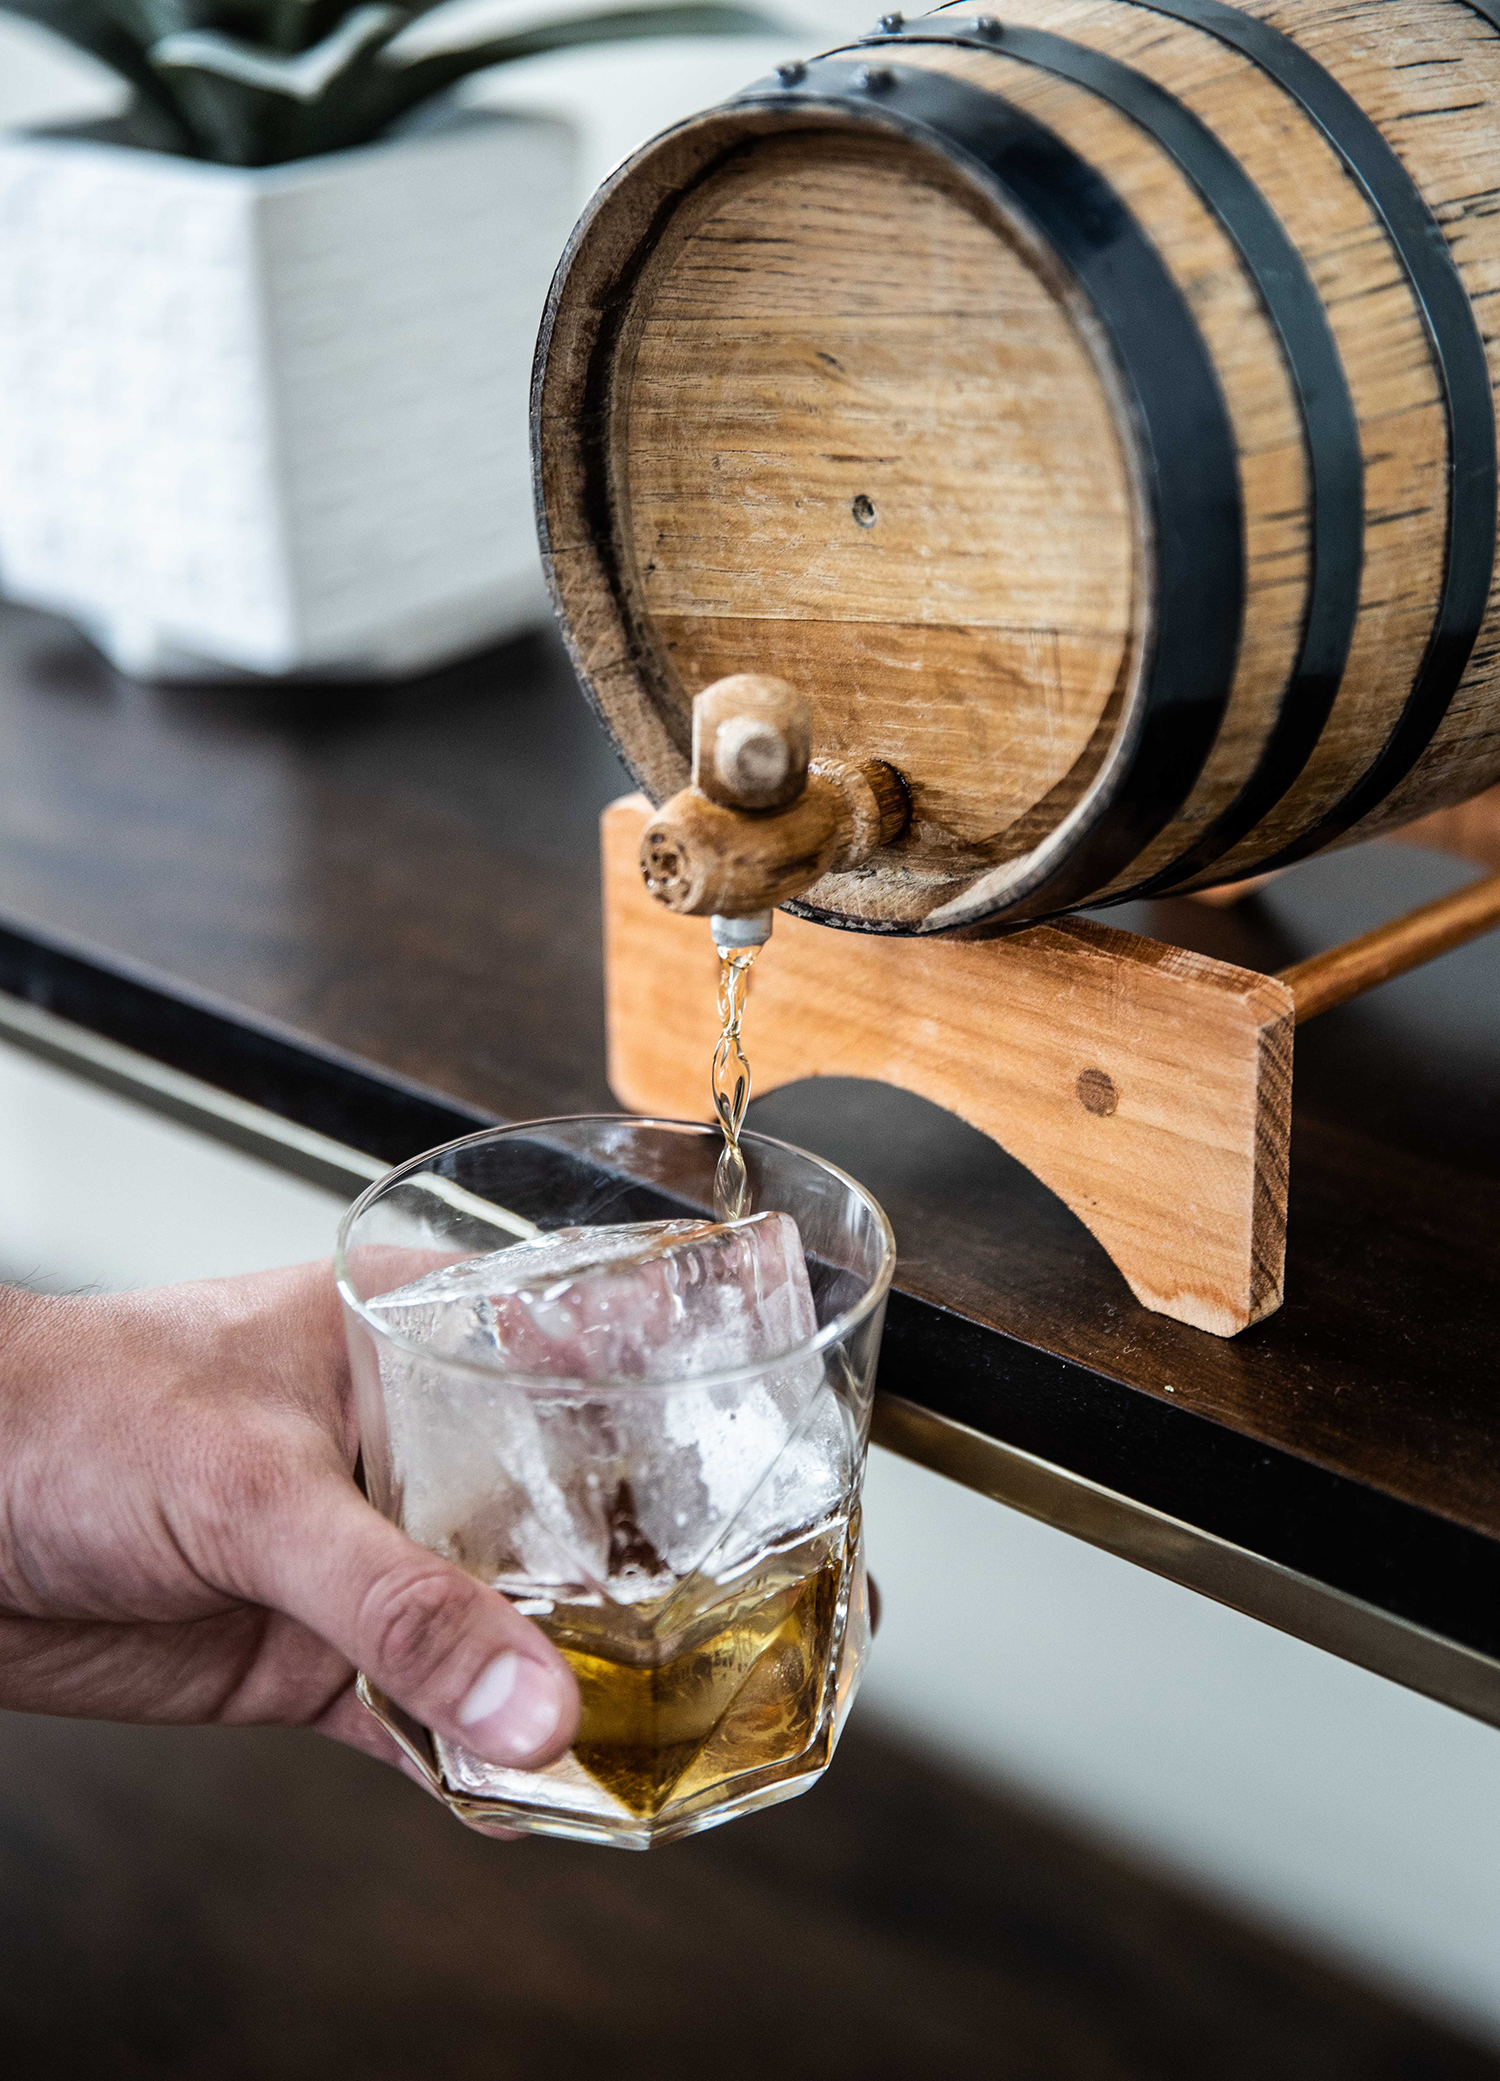 Pouring barrel-aged Greenpoint cocktail from two-liter barrel